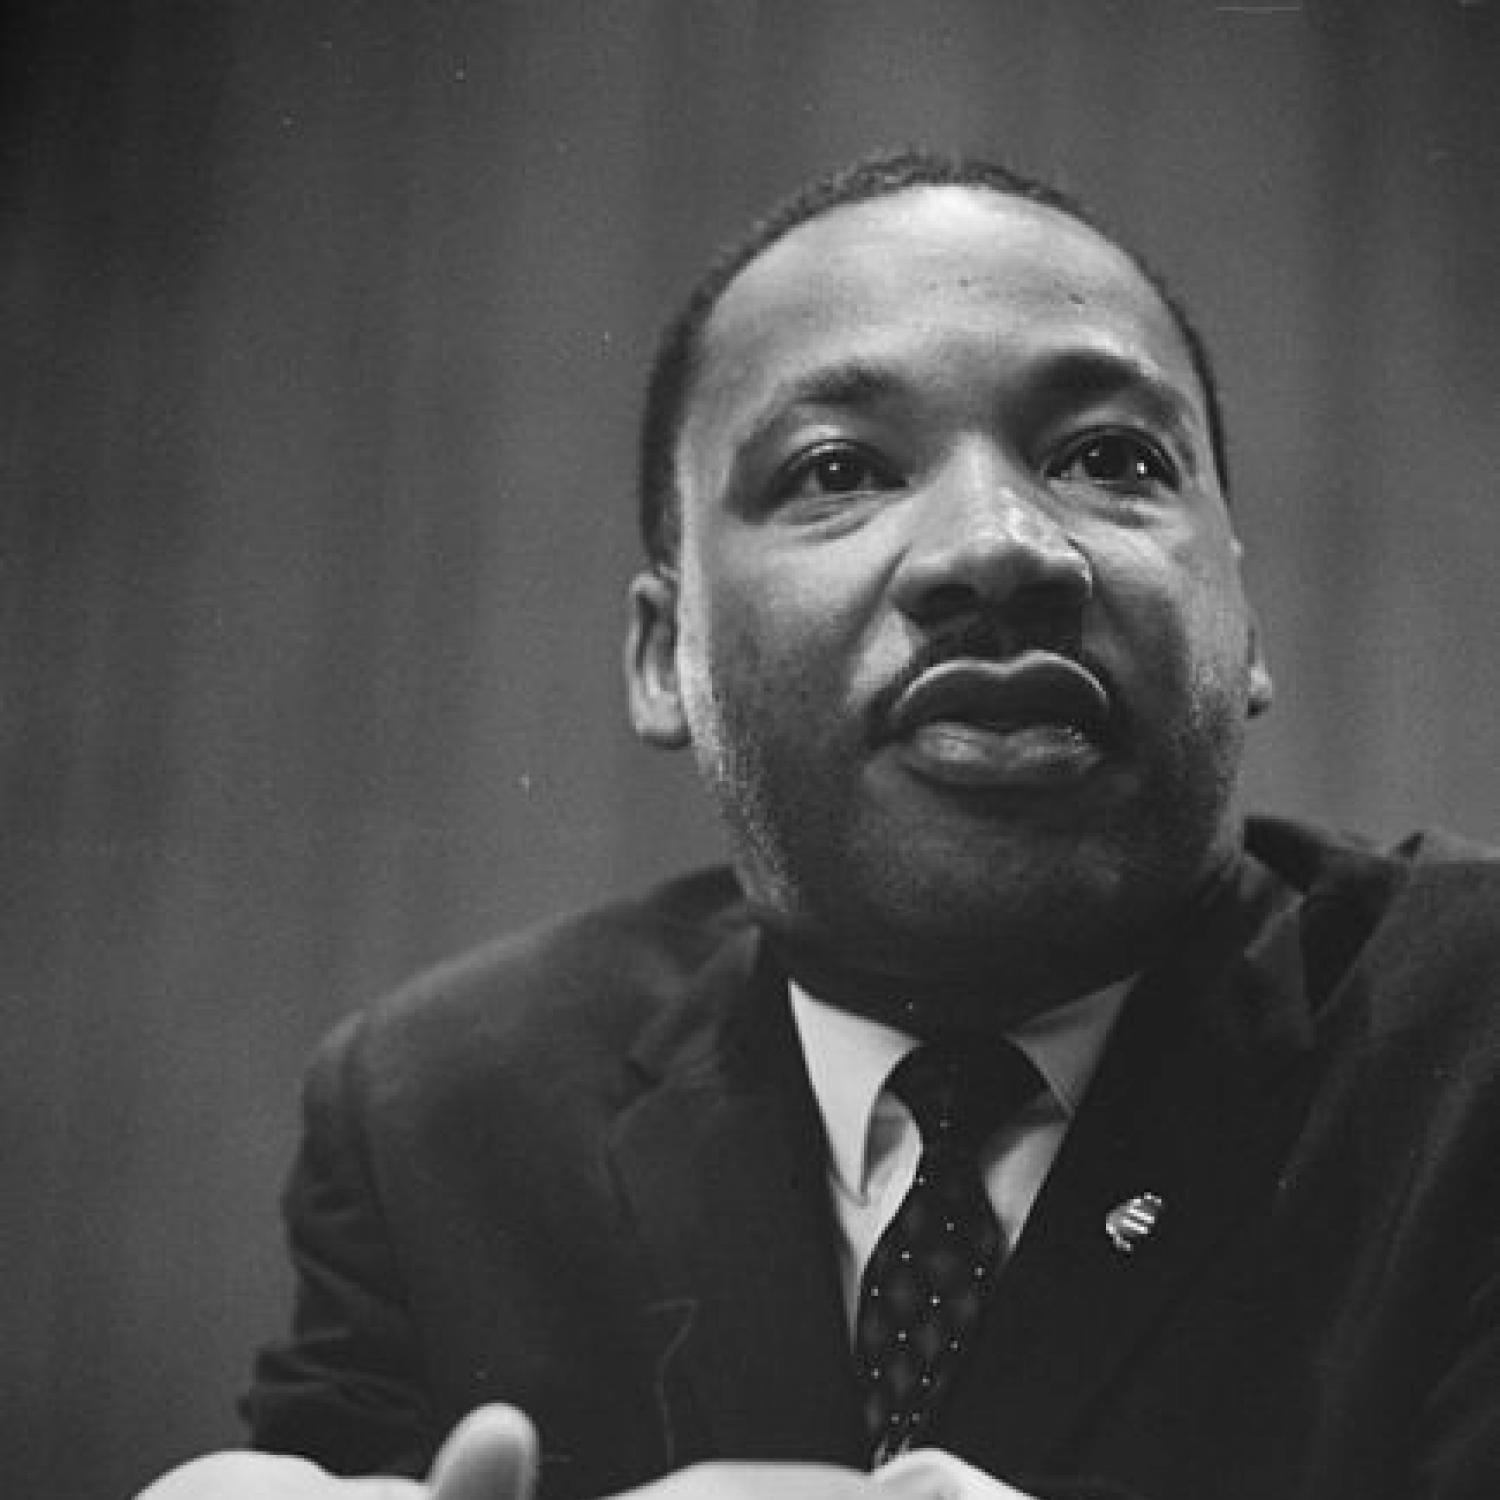 Did you know these facts about martin luther king jr?